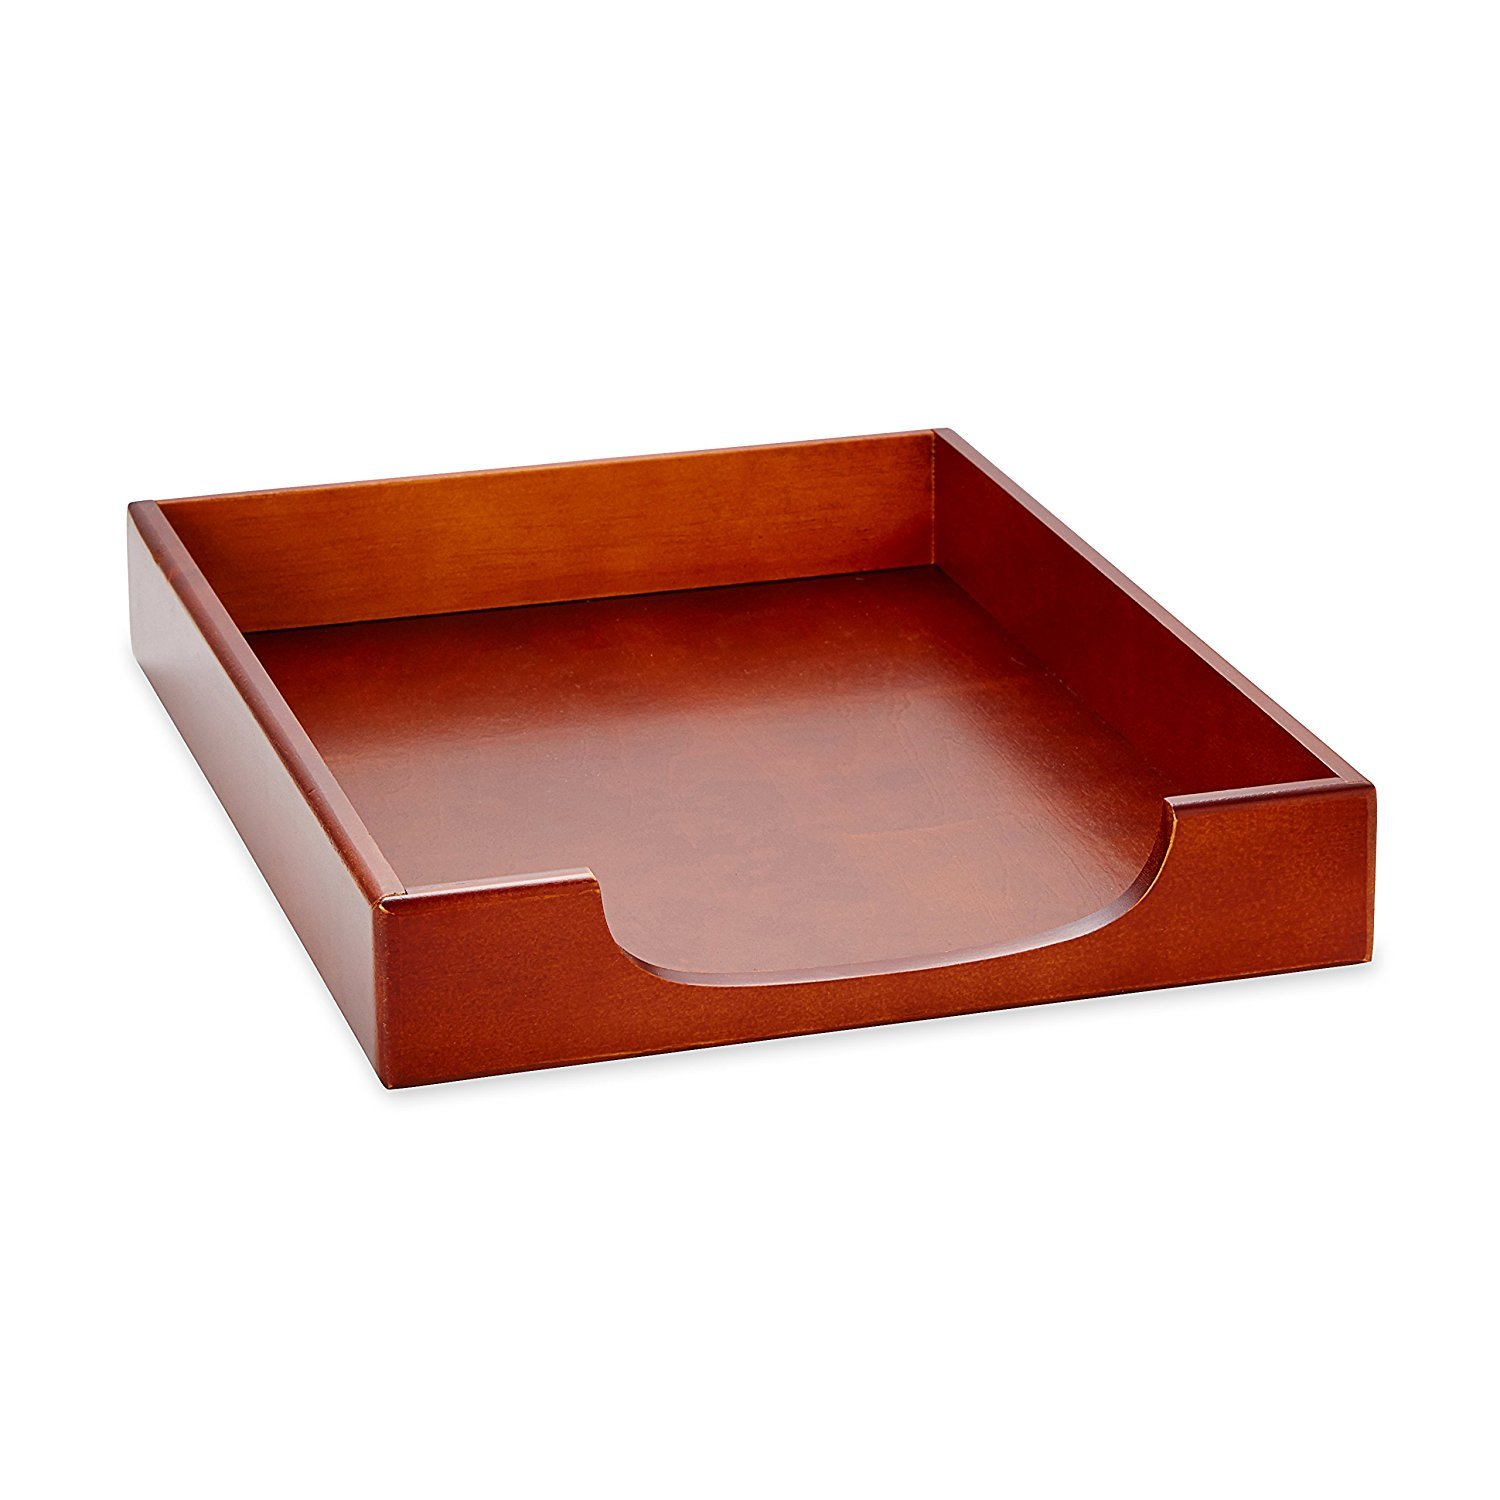 Rolodex Desk Tray 1 Unit 23350 Mahogany Wood Tones Front Load Stacking Letter Tray